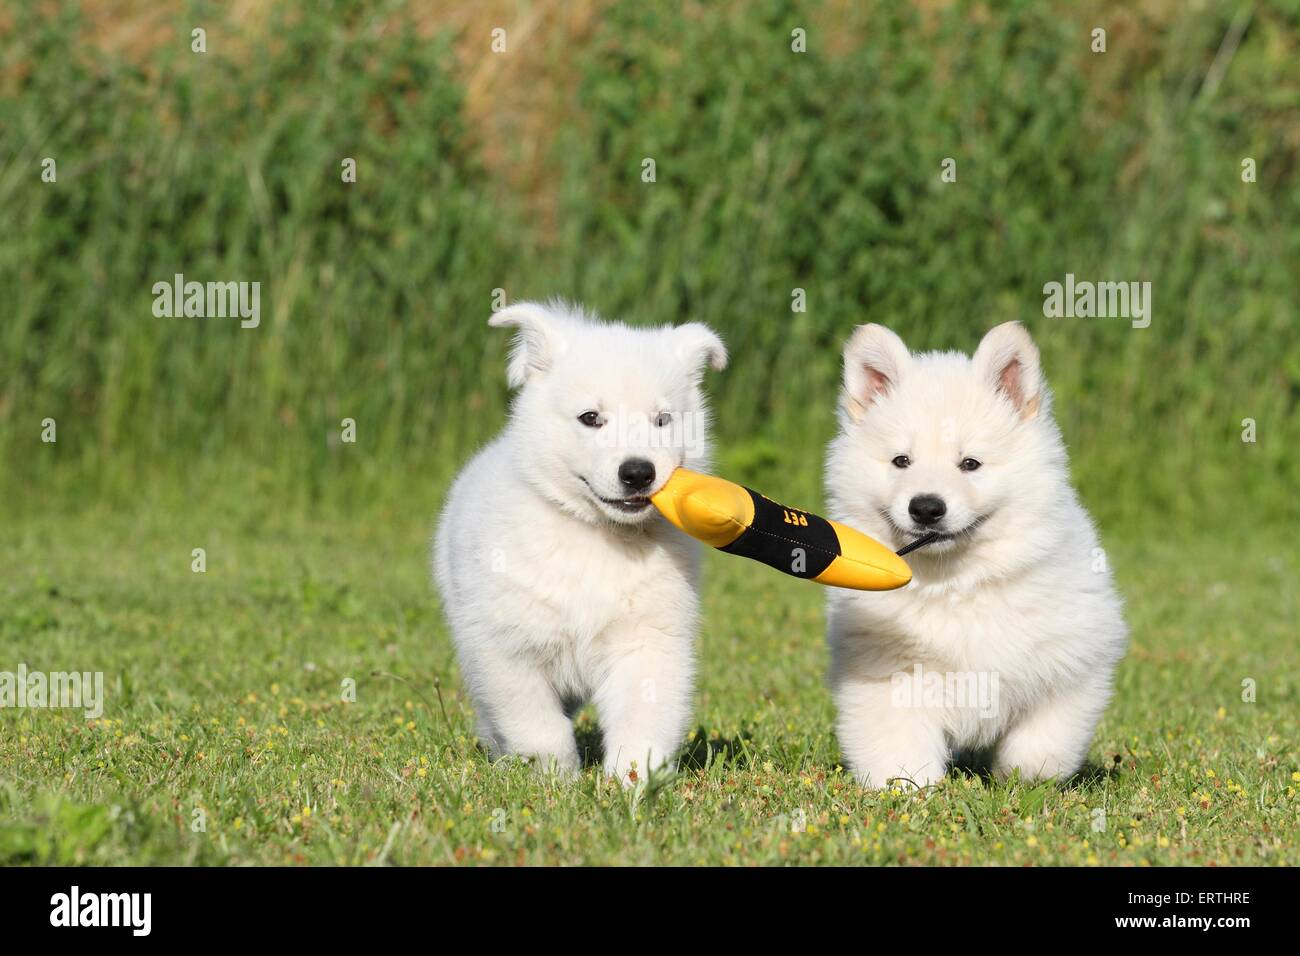 Berger Blanc Suisse Puppies Stock Photo 83519394 Alamy